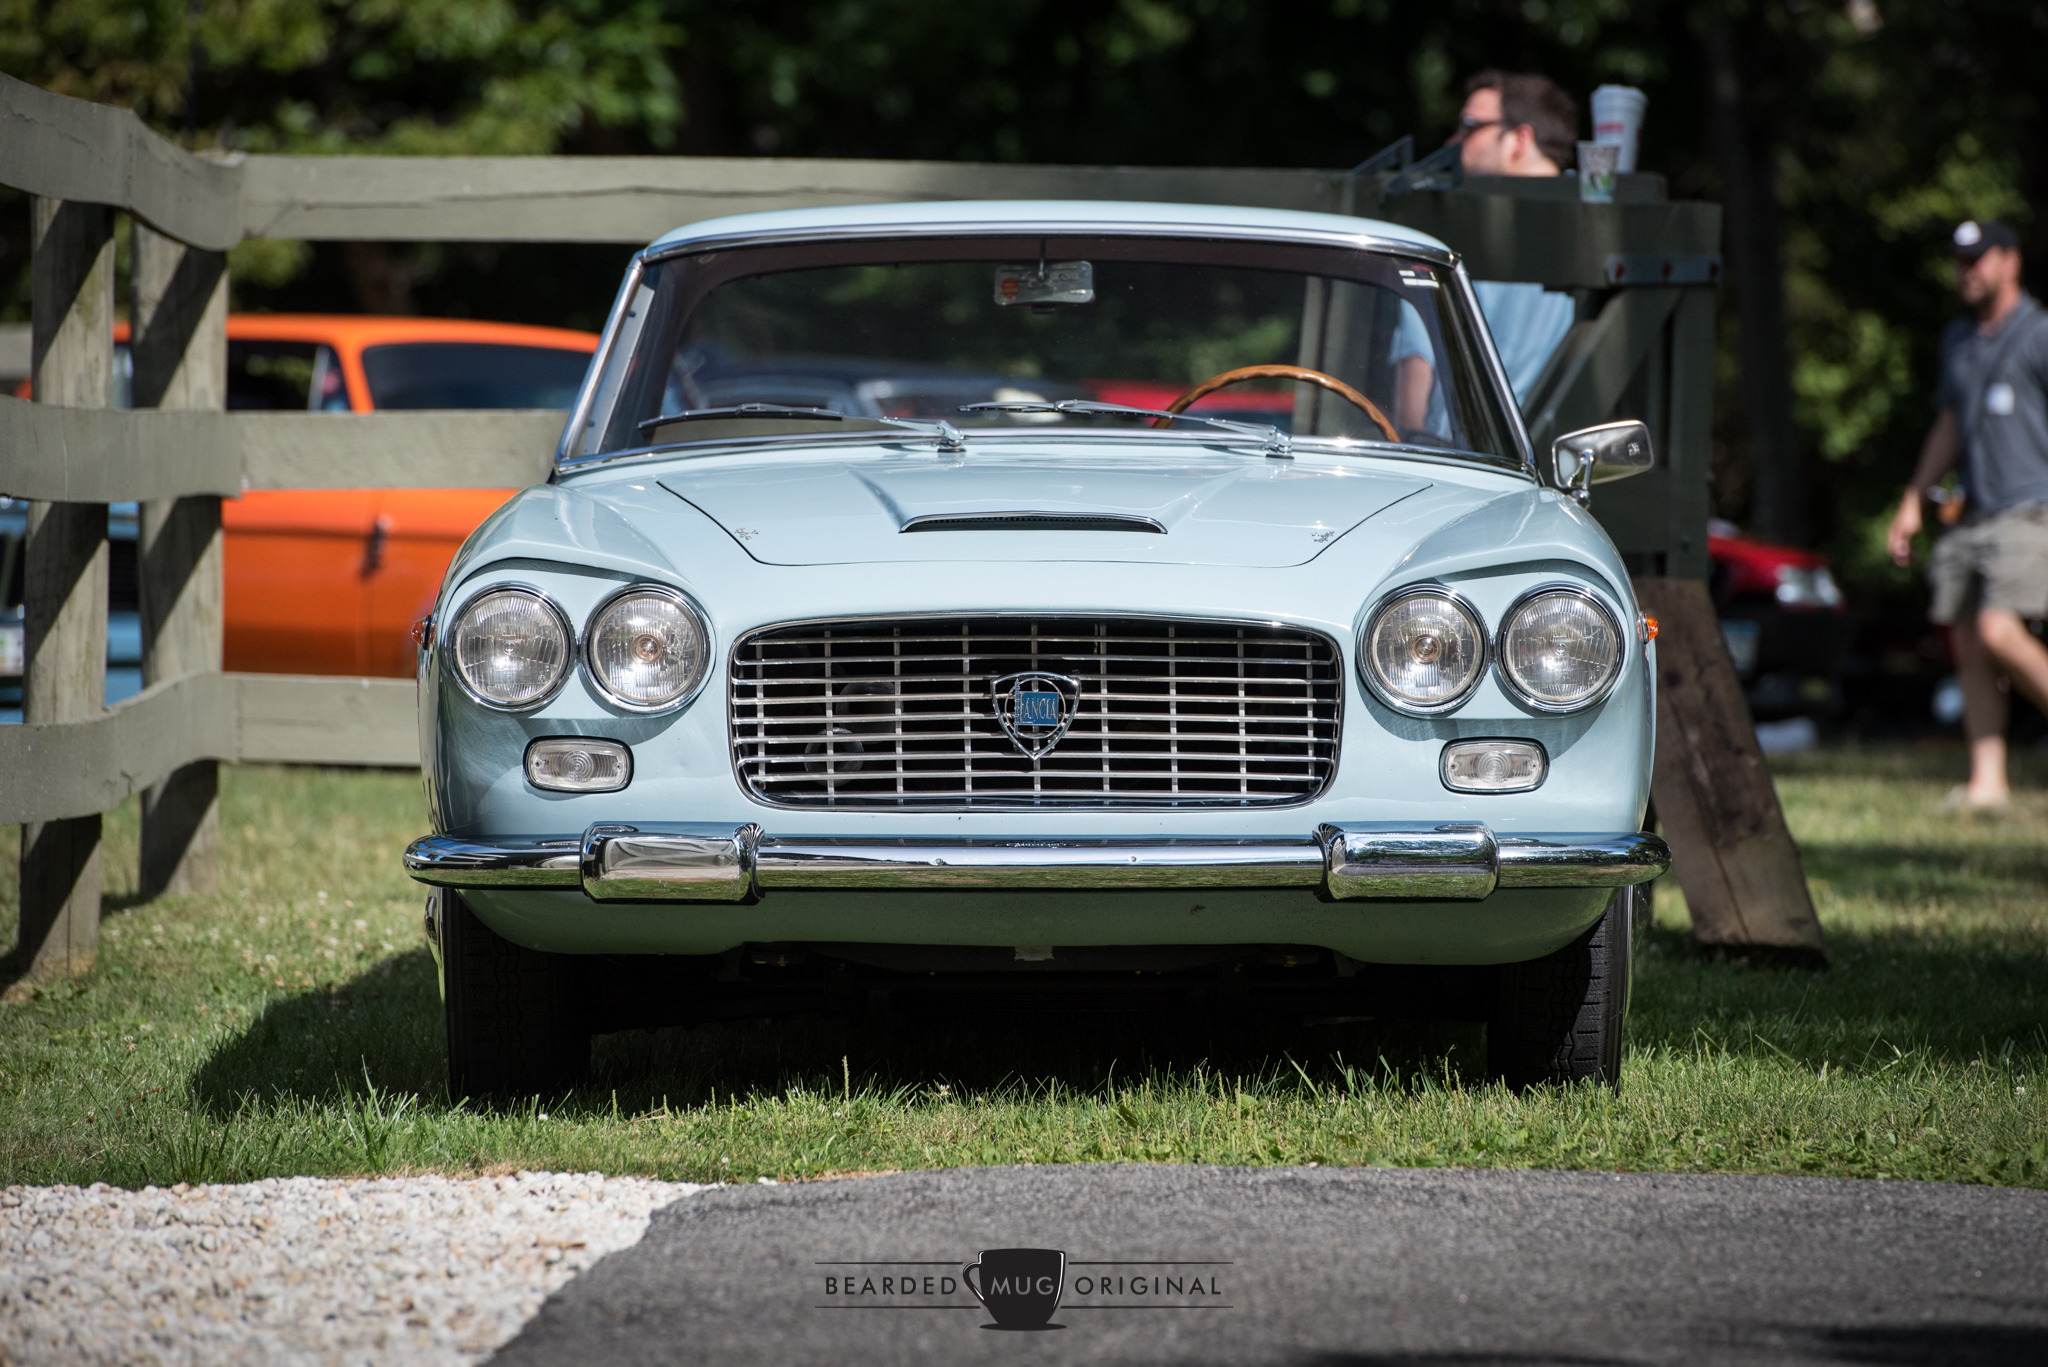 """Domenico's 1961 Lancia Flaminia coupe GT 2.5L with all aluminum coachwork by Touring will be on display at the Sunday in the Park Concours at Lime Rock during the Historics weekend. According to Santo, """"dad traded Sergio Franchi for this car in return for an engine job on a Lancia Aurelia Spider America...It was an unmolested 20 km car...that was in 1982. It was a treasure for dad."""""""